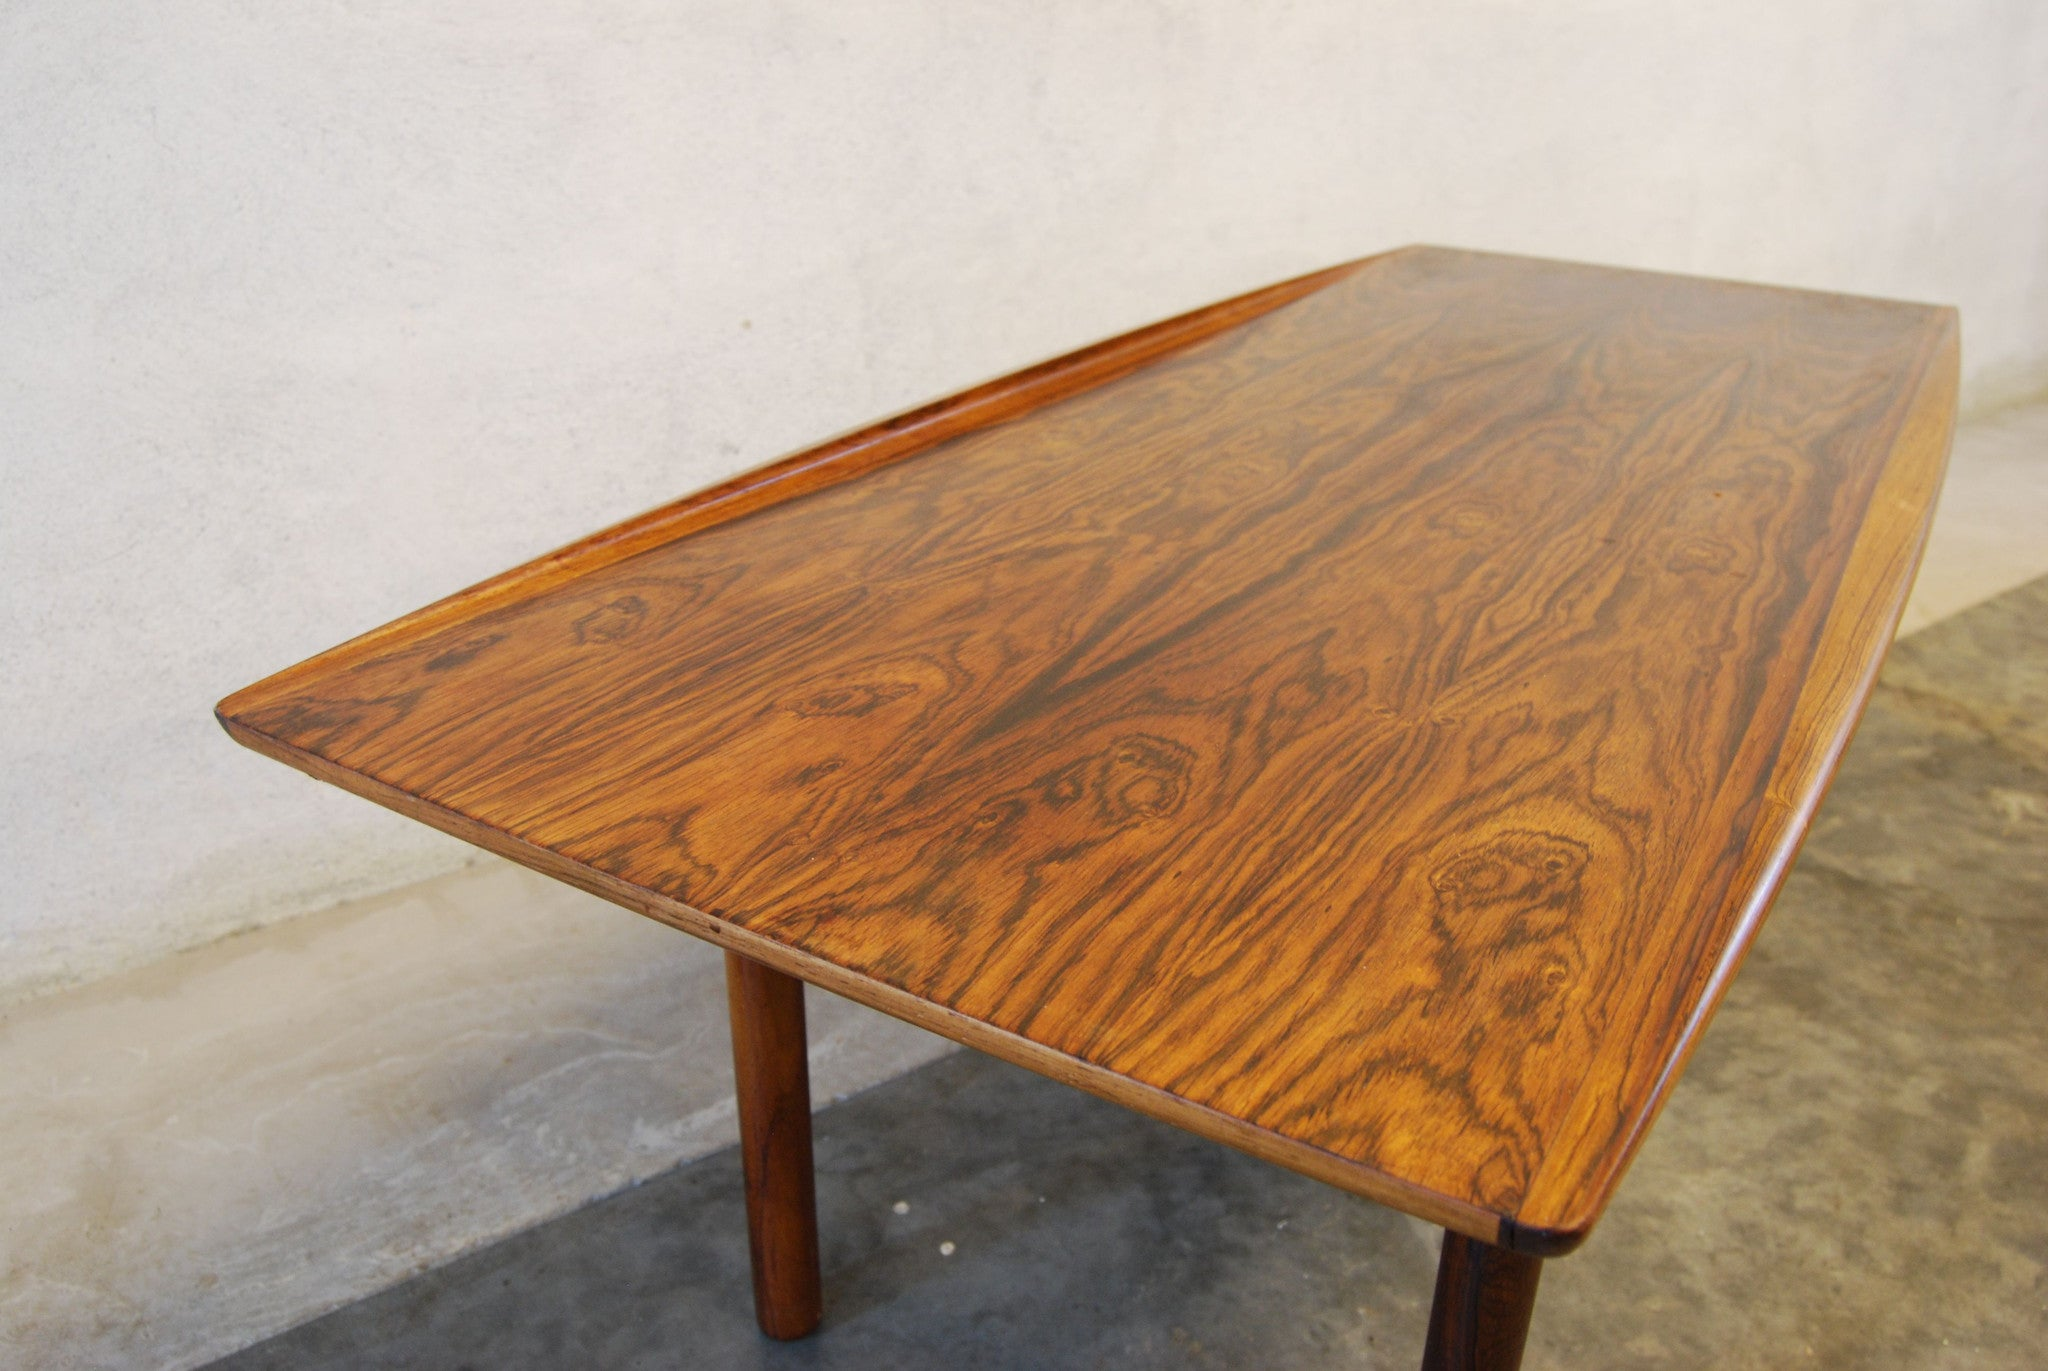 Chase U0026 Sorensen Rosewood Coffee Table By Grete Jalk